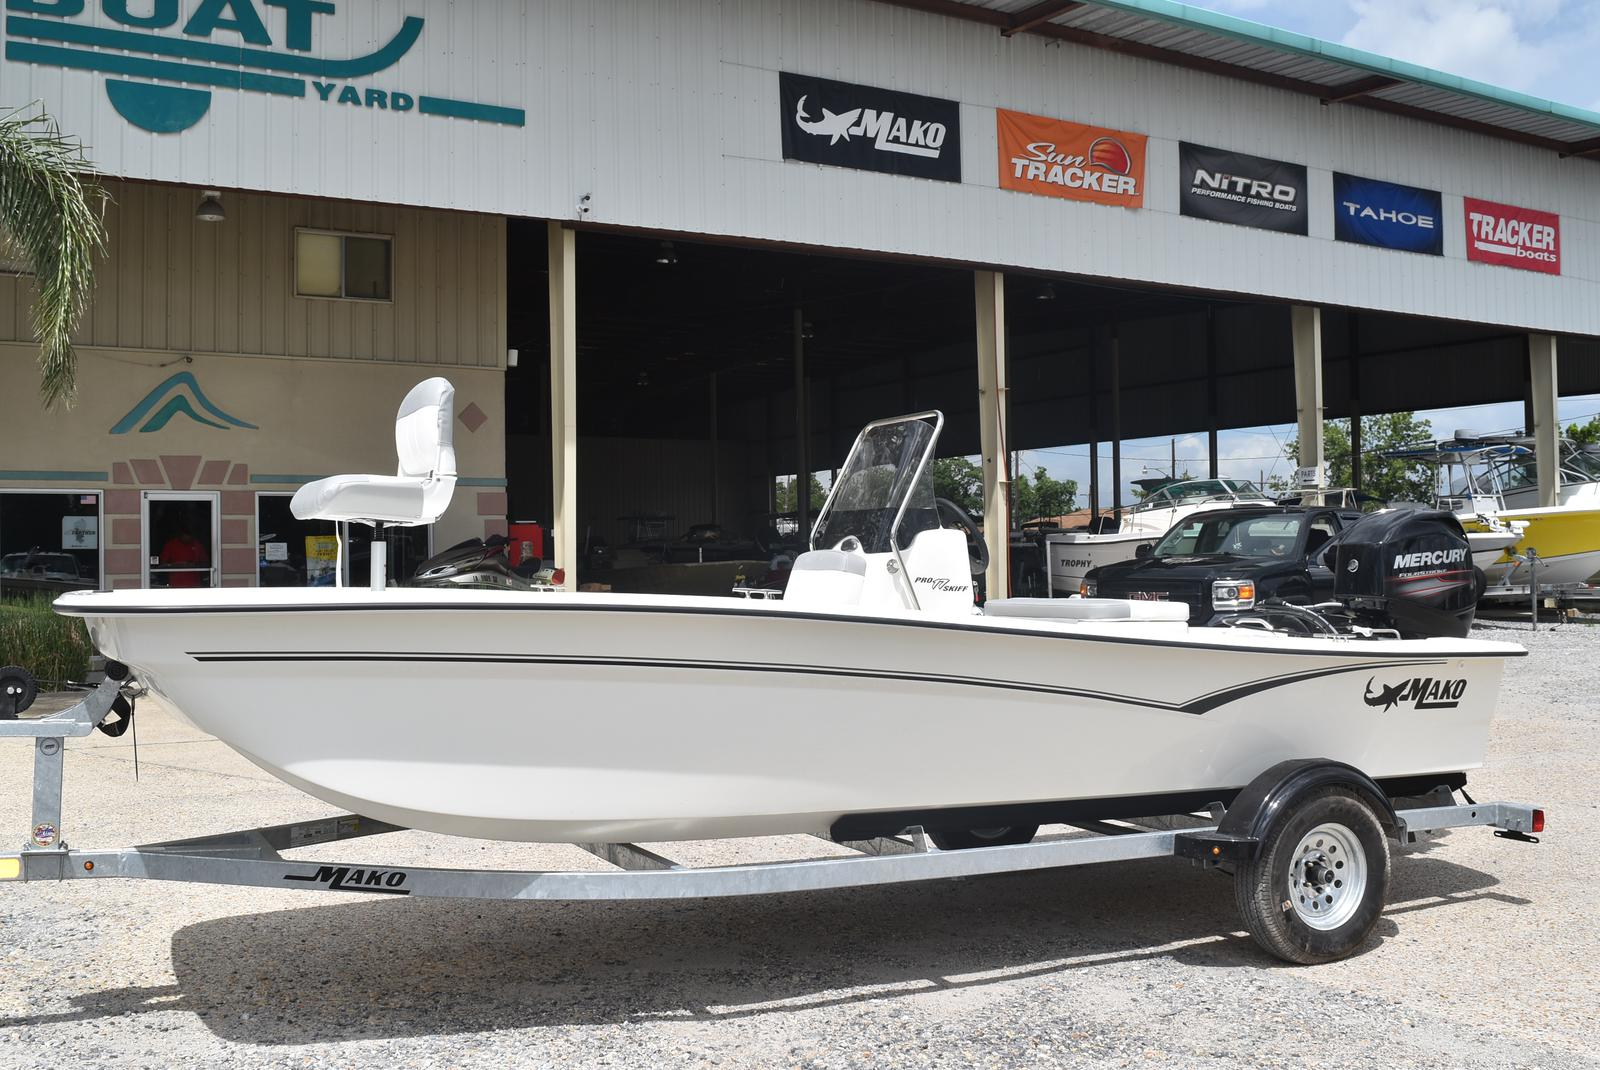 2020 Mako boat for sale, model of the boat is Pro Skiff 17, 75 ELPT & Image # 109 of 702